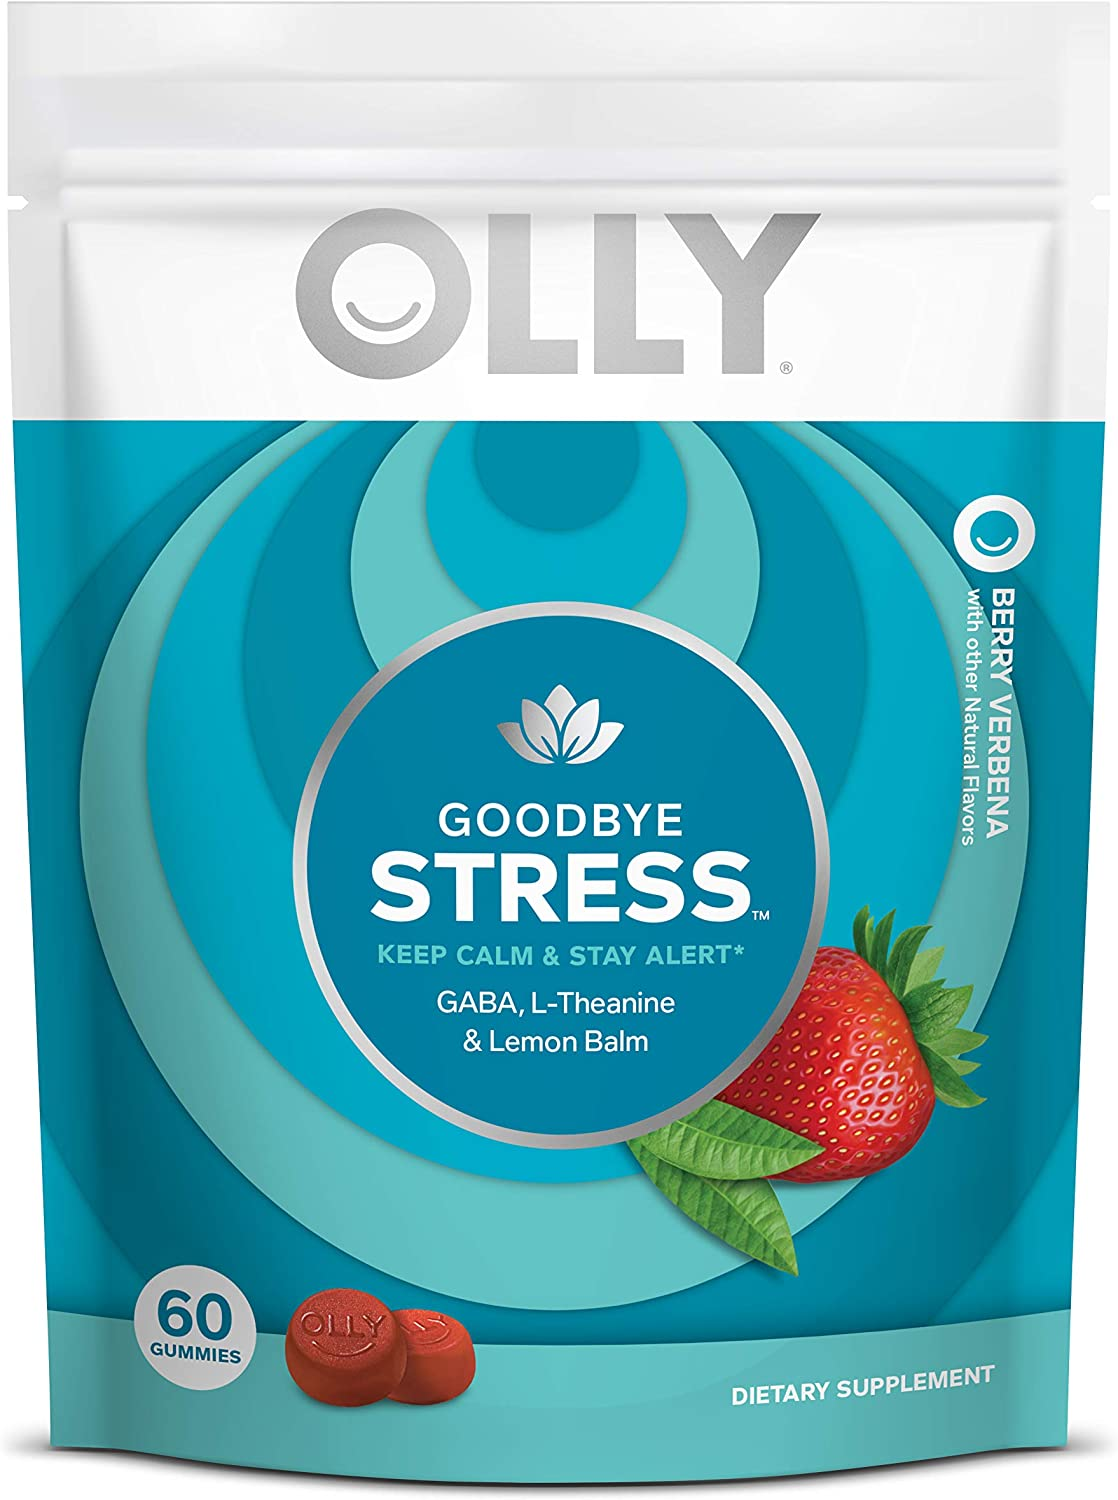 OLLY Goodbye Stress Gummy, 30 Day Supply (60 Count Gummies), Berry Verbena, GABA, L Theanine, Lemon Balm, Chewable Supplement